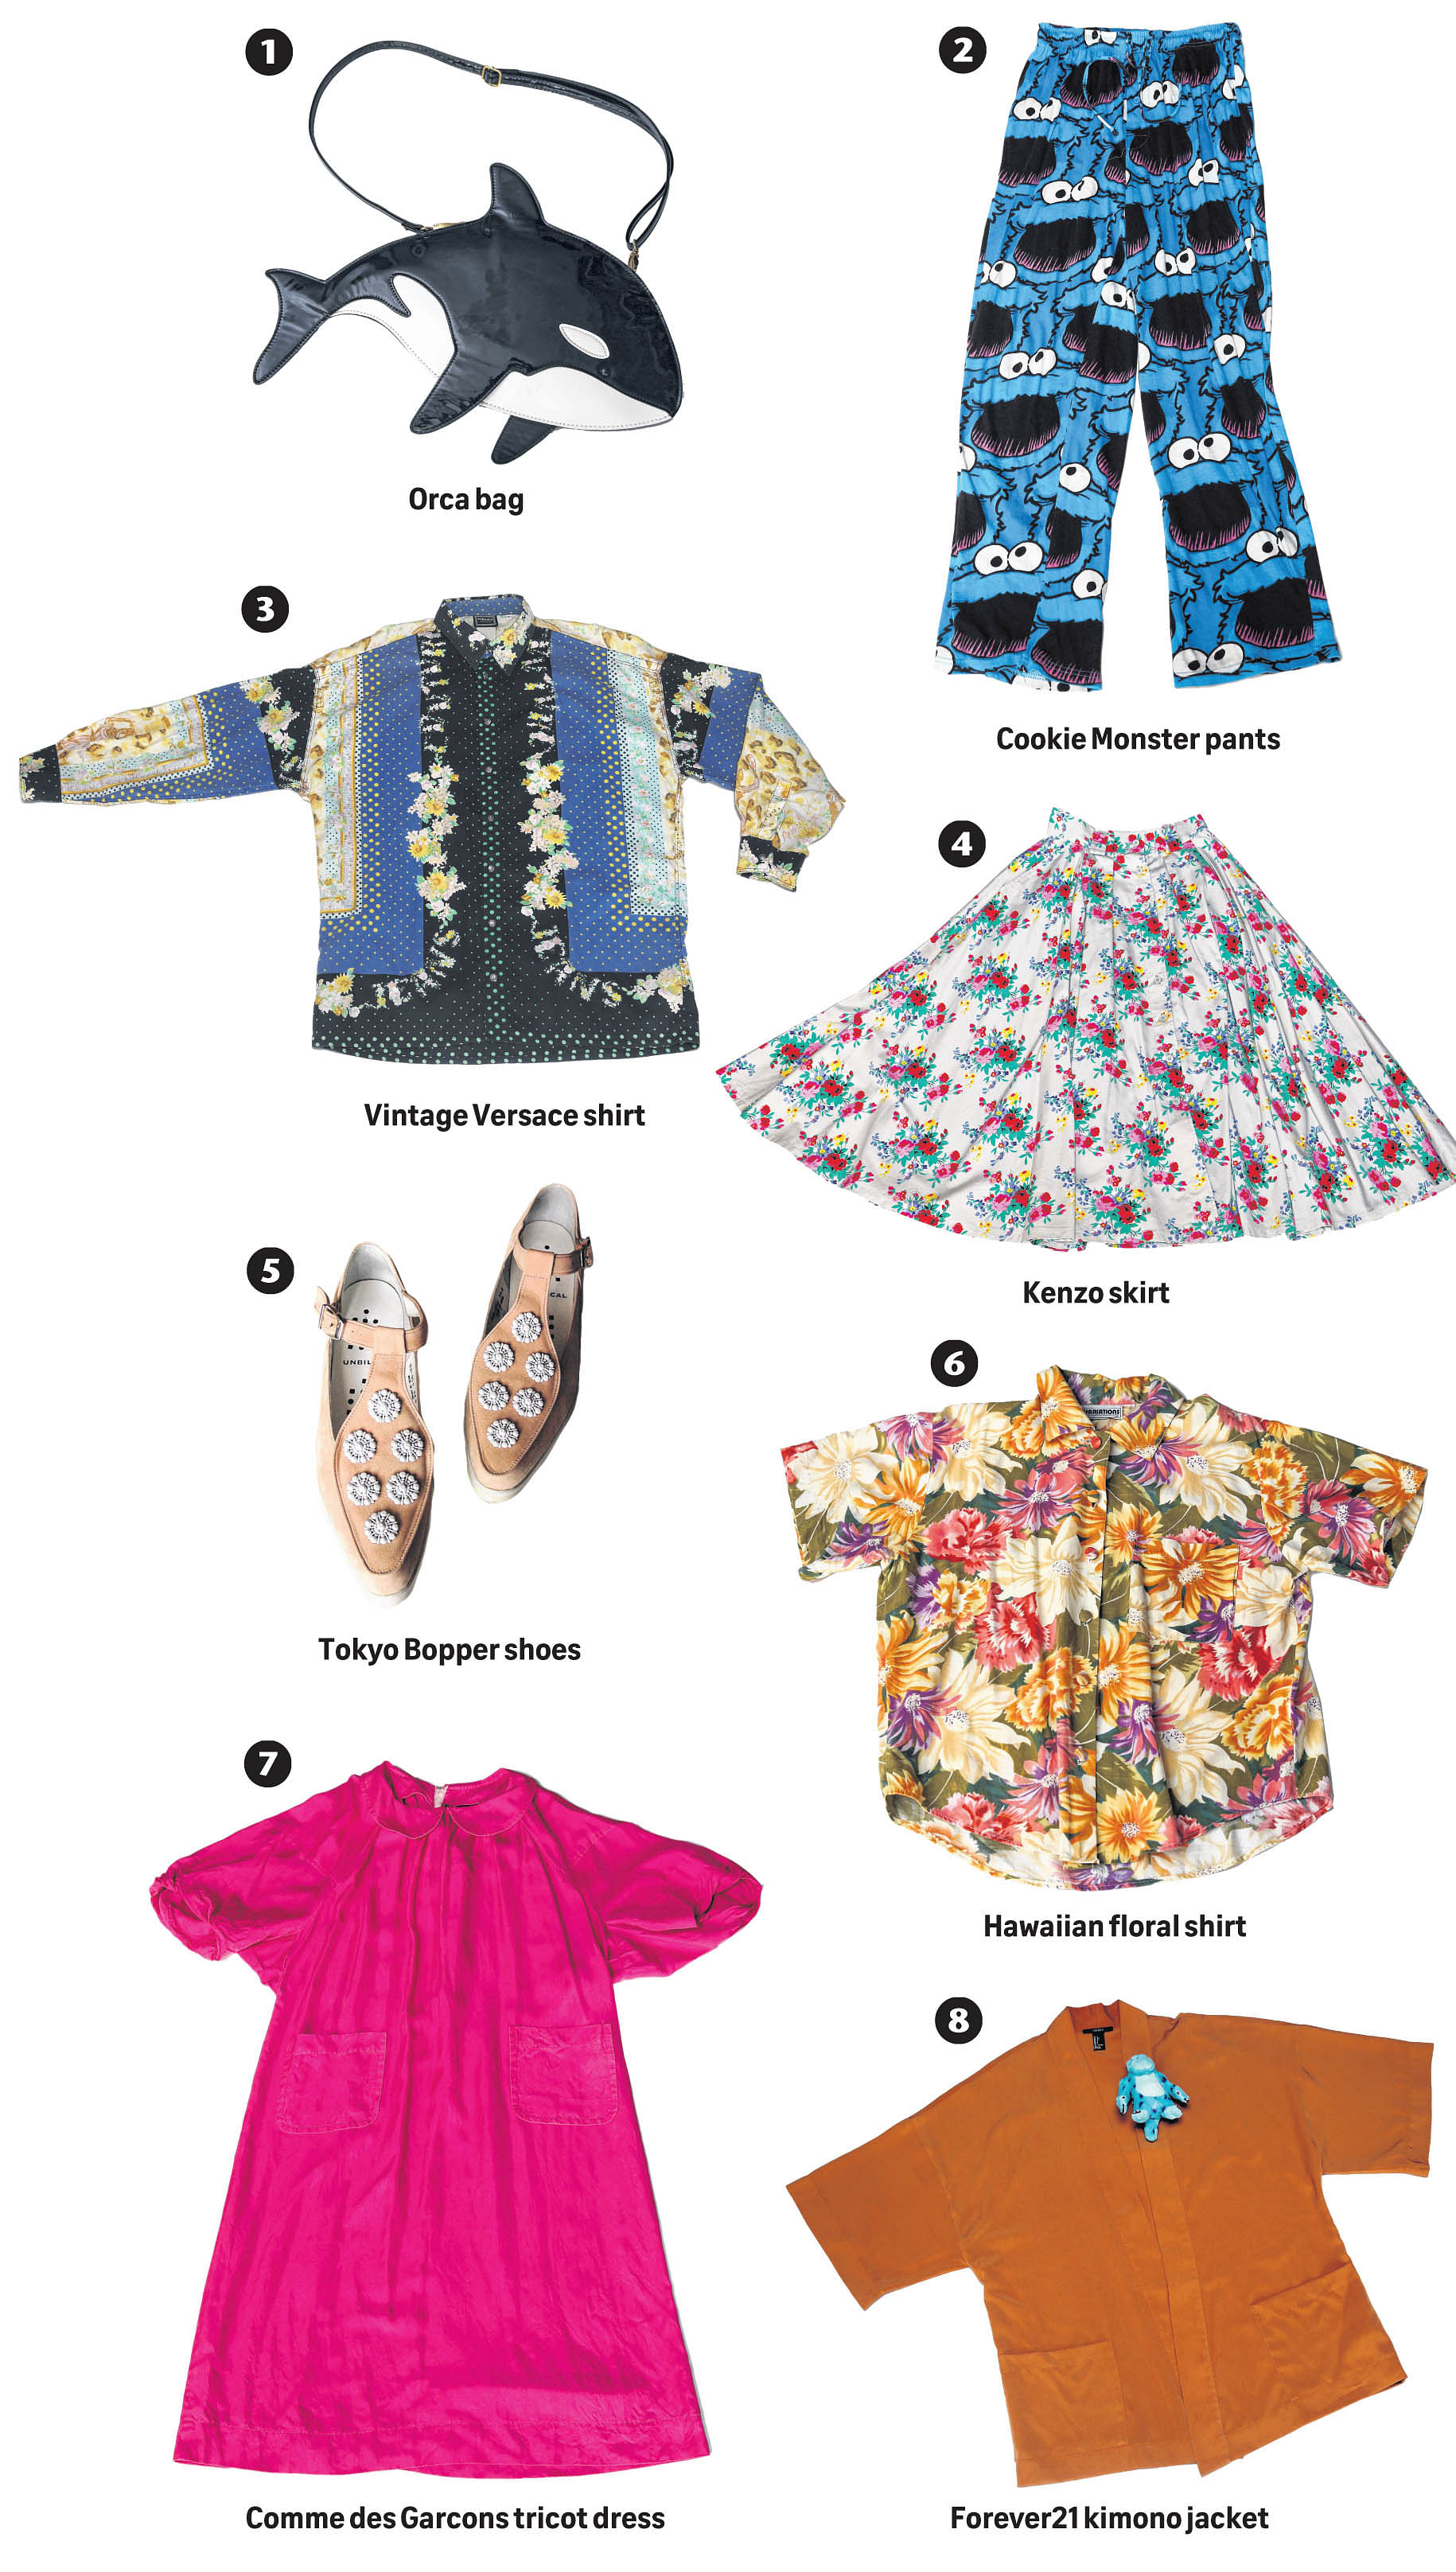 b63afca143b6 I take inspiration from Harajuku streetwear and mix it with vintage  clothing.